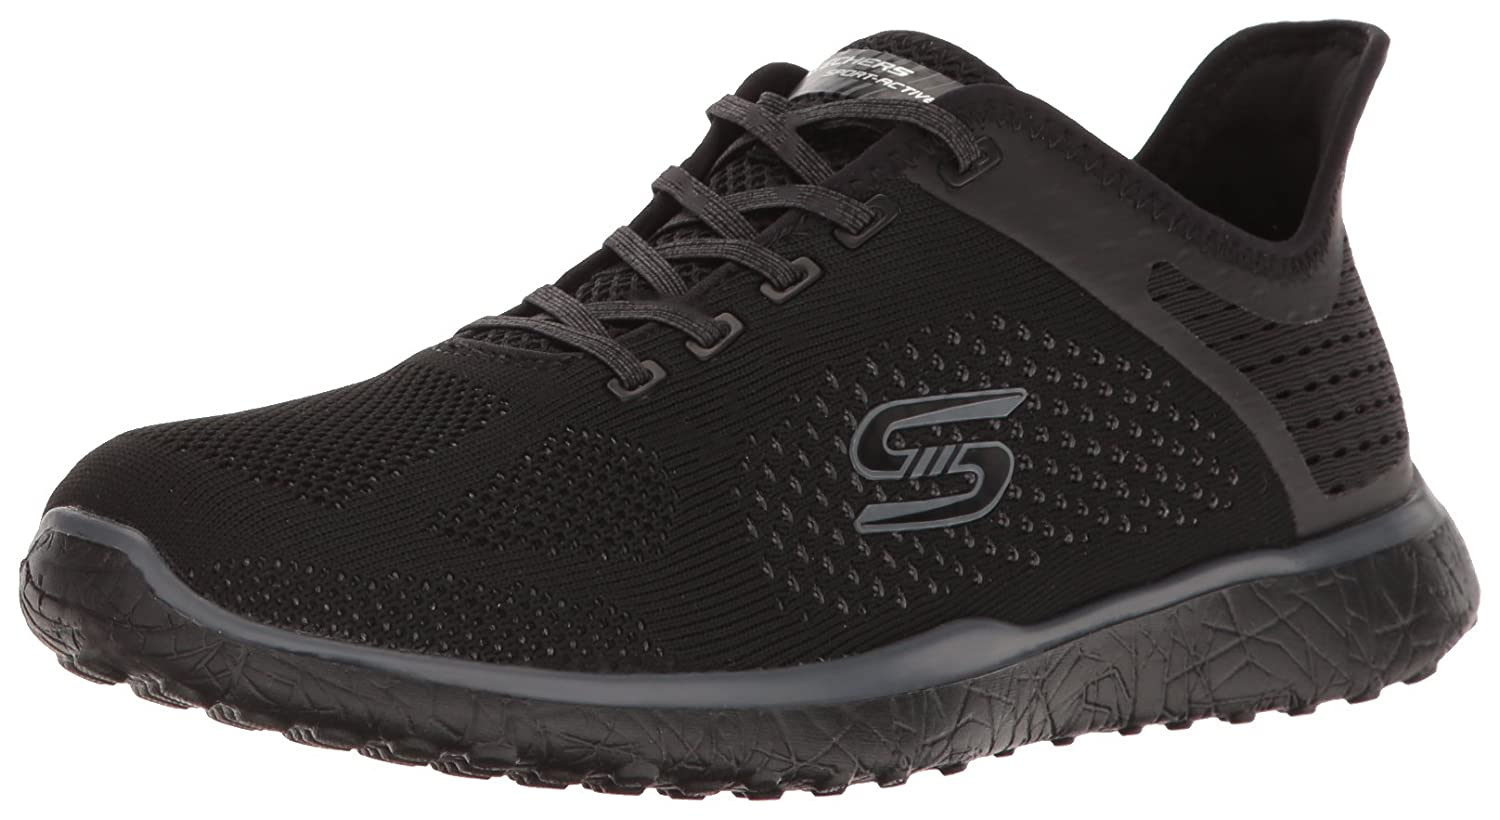 Skechers Sport Women's Microburst Supersonic Fashion Sneaker B01J2S1DN8 8 B(M) US|Black